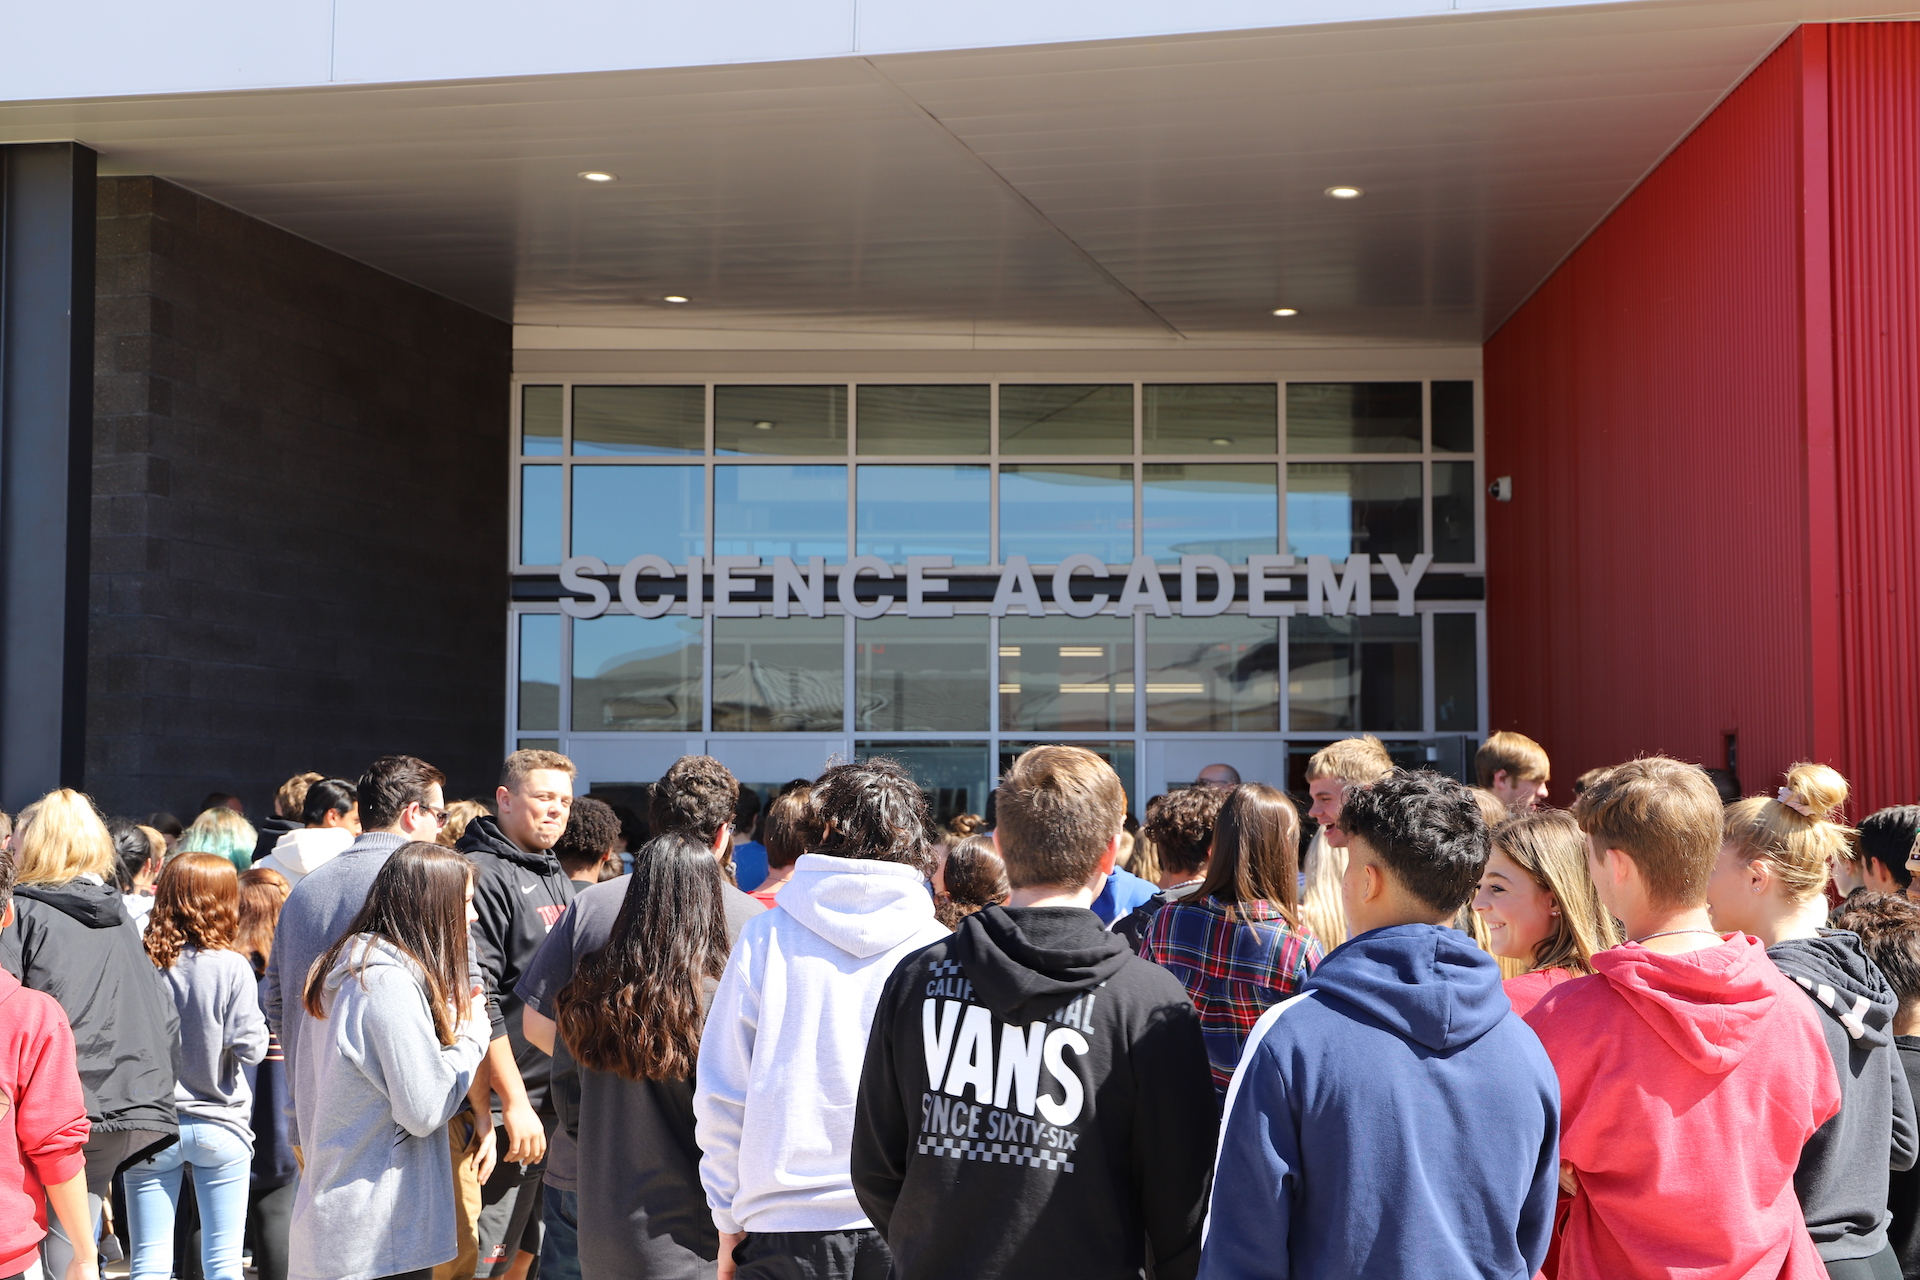 Students enter the new 27,385sf Mustang High School Science Academy